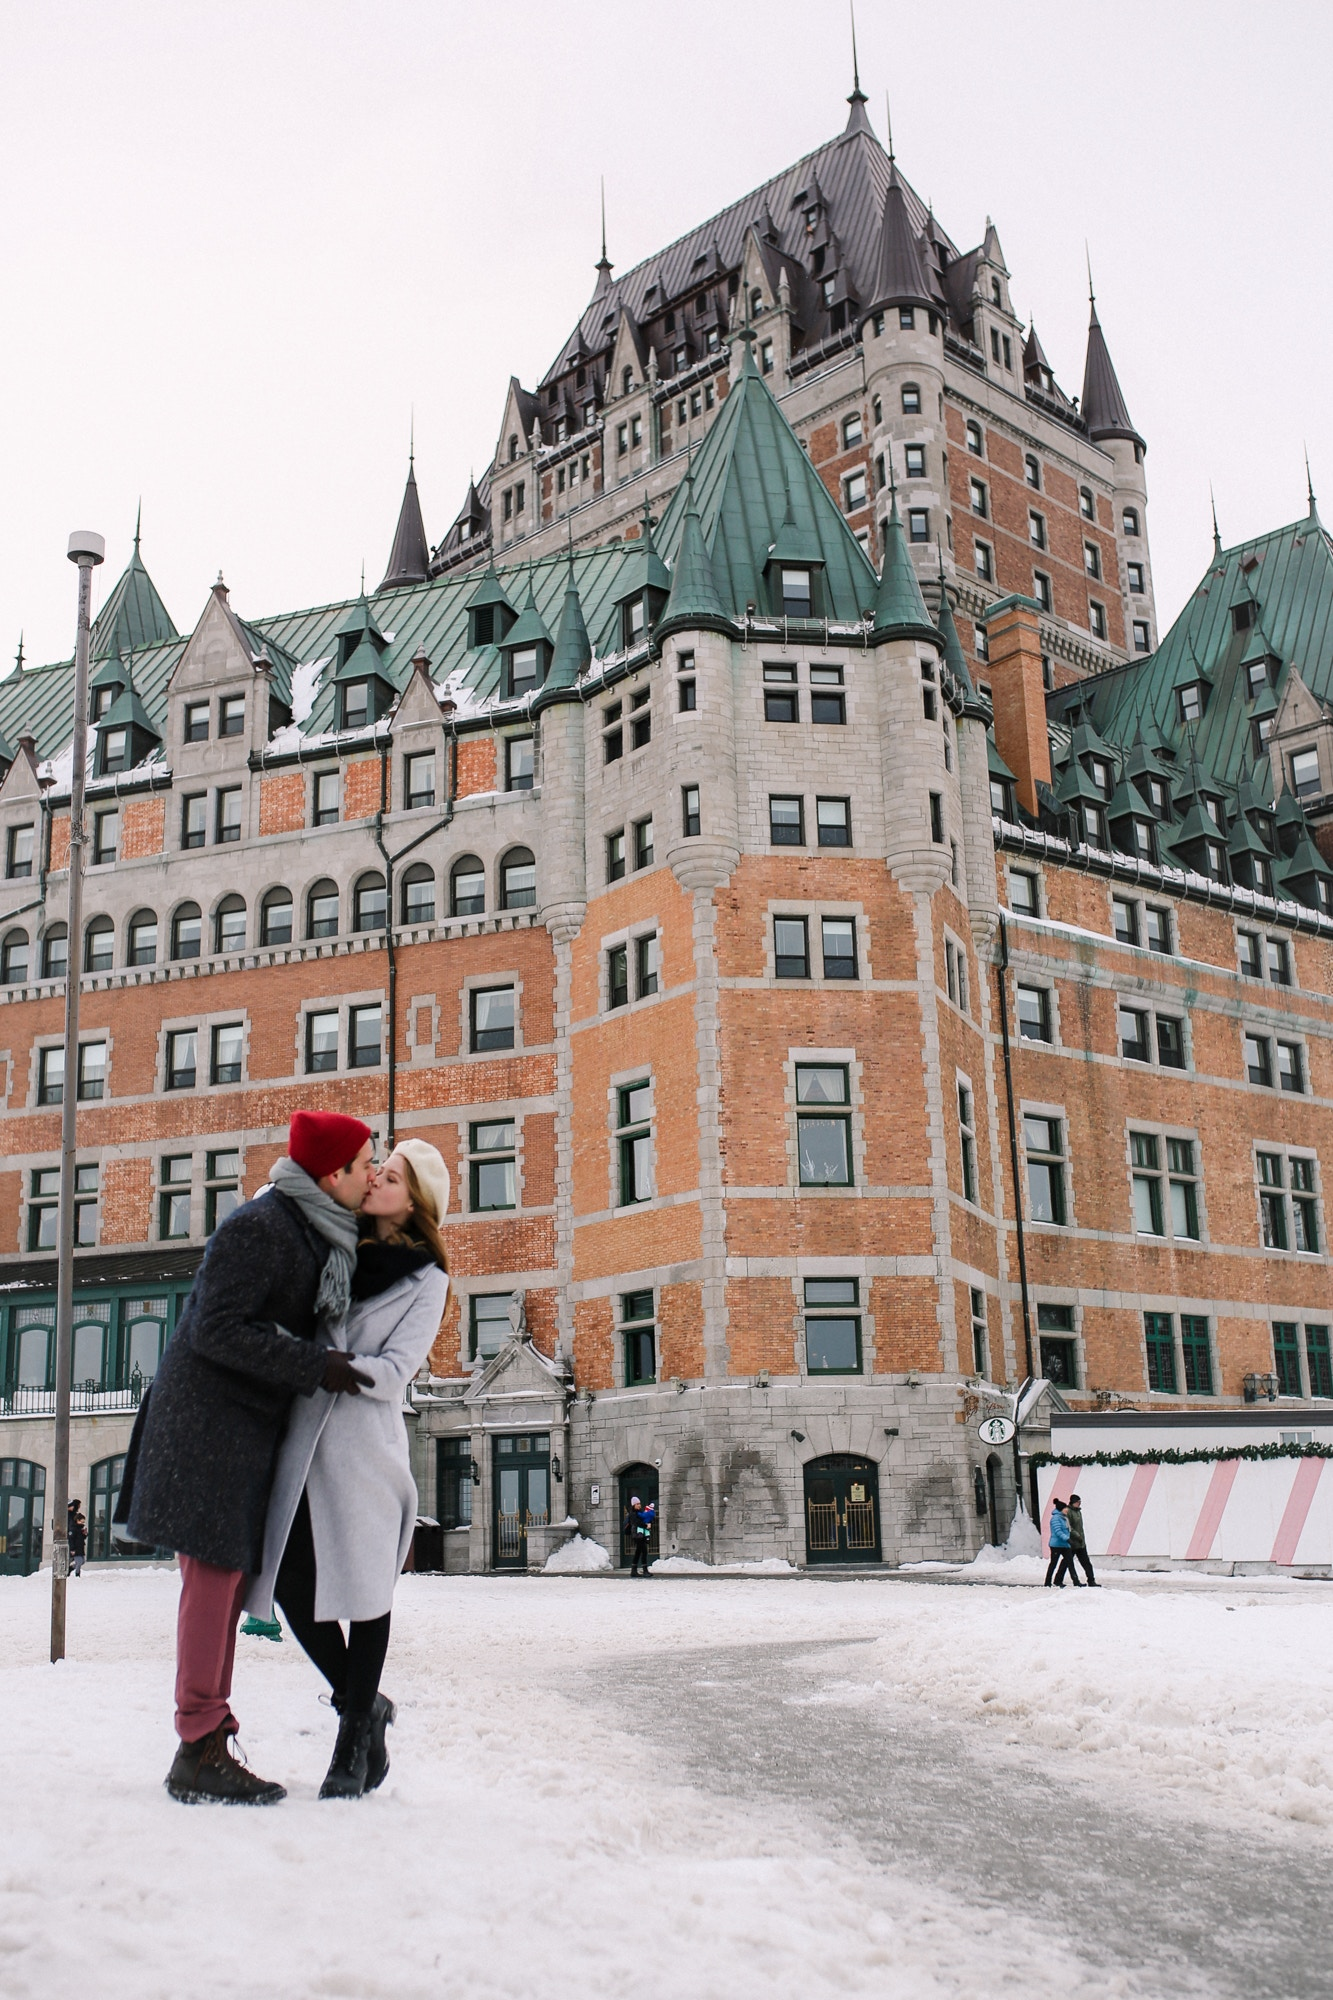 Romantic winter weekend getaway to Quebec City - 48 hour itinerary for couples in the charming, European city in North America.